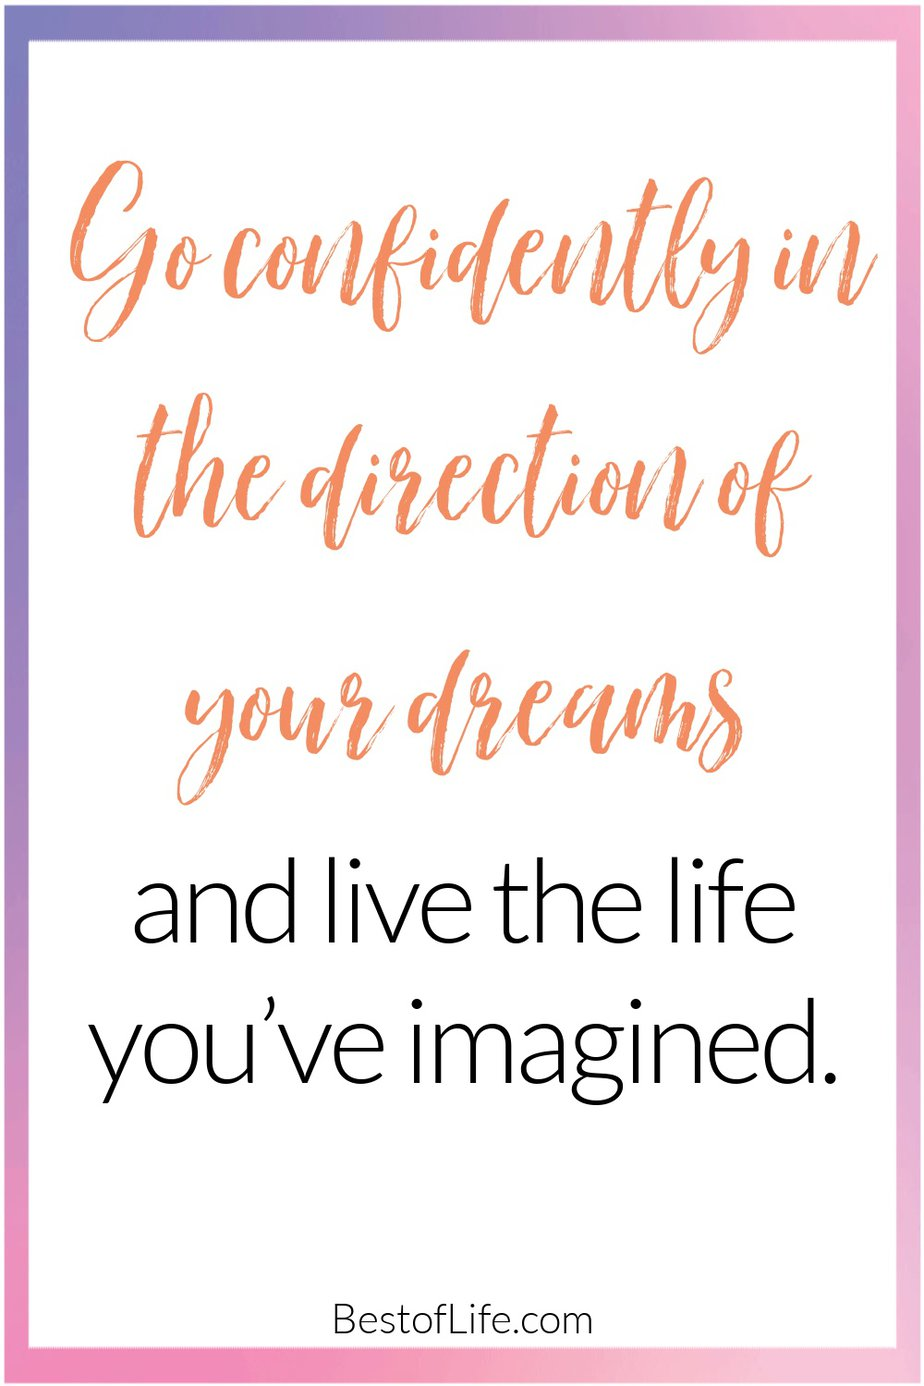 Graduation Quotes from Parents Go Confidently in the Direction of Your Dreams and Love the Life You've Imagined